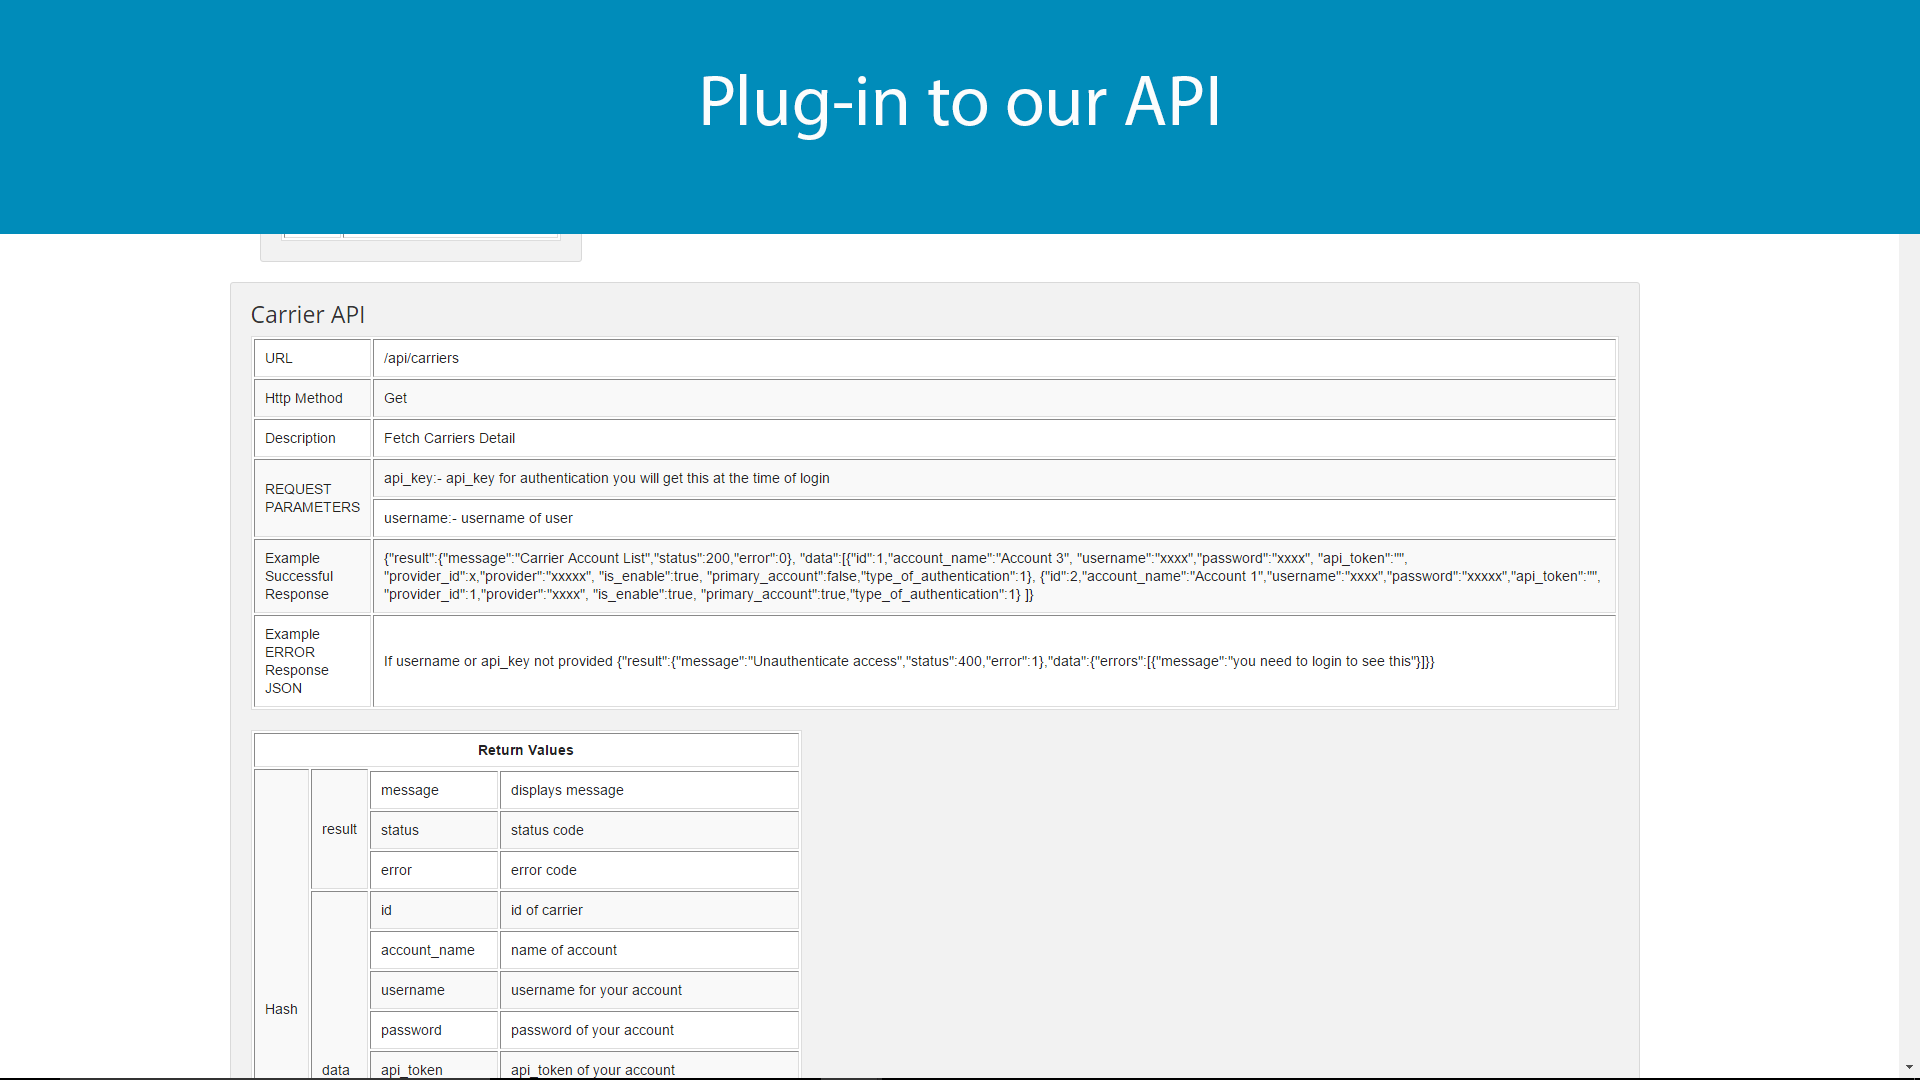 plug-in to our api.png